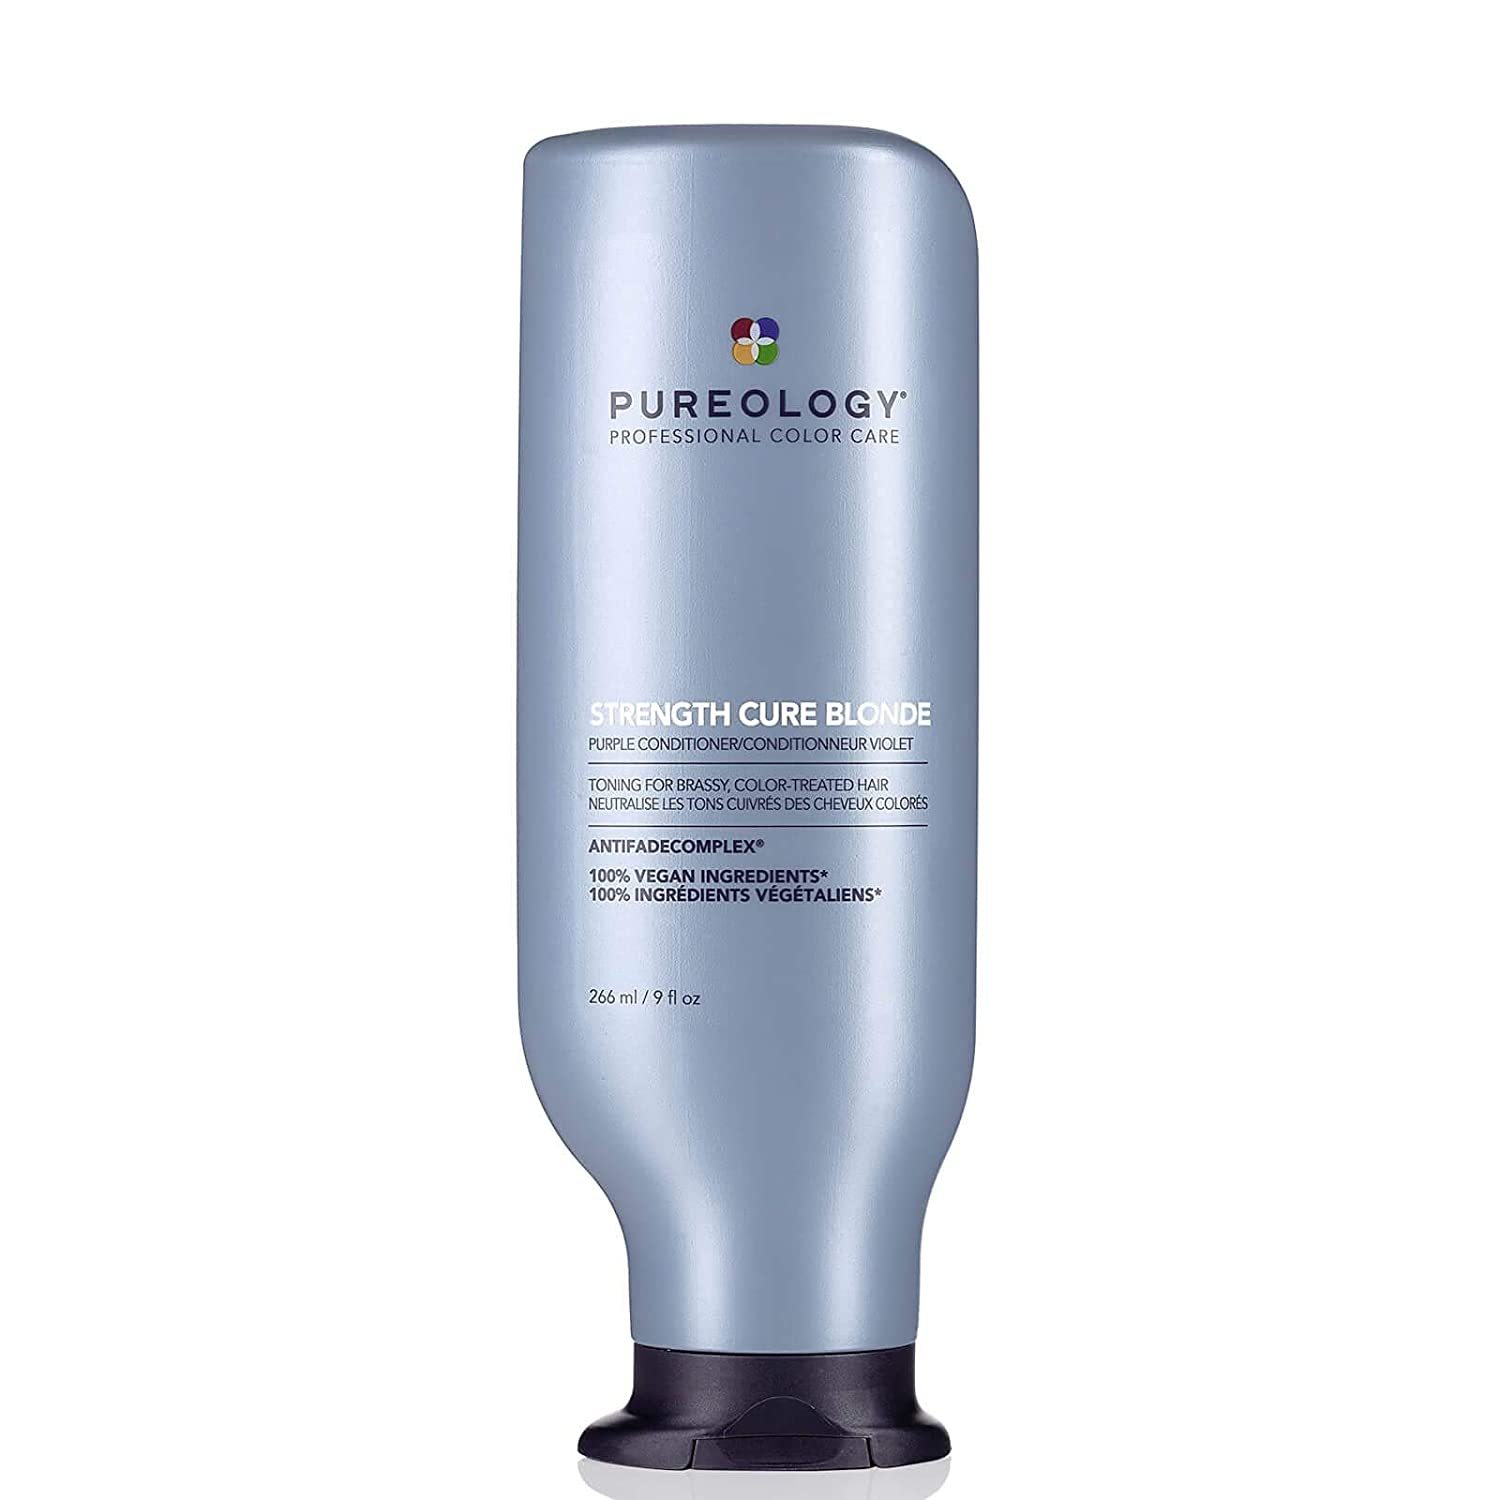 Pureology Strength Cure Blonde Purple Conditioner for Blonde & Lightened Color-Treated Hair, 9 Fl Oz: Premium Beauty